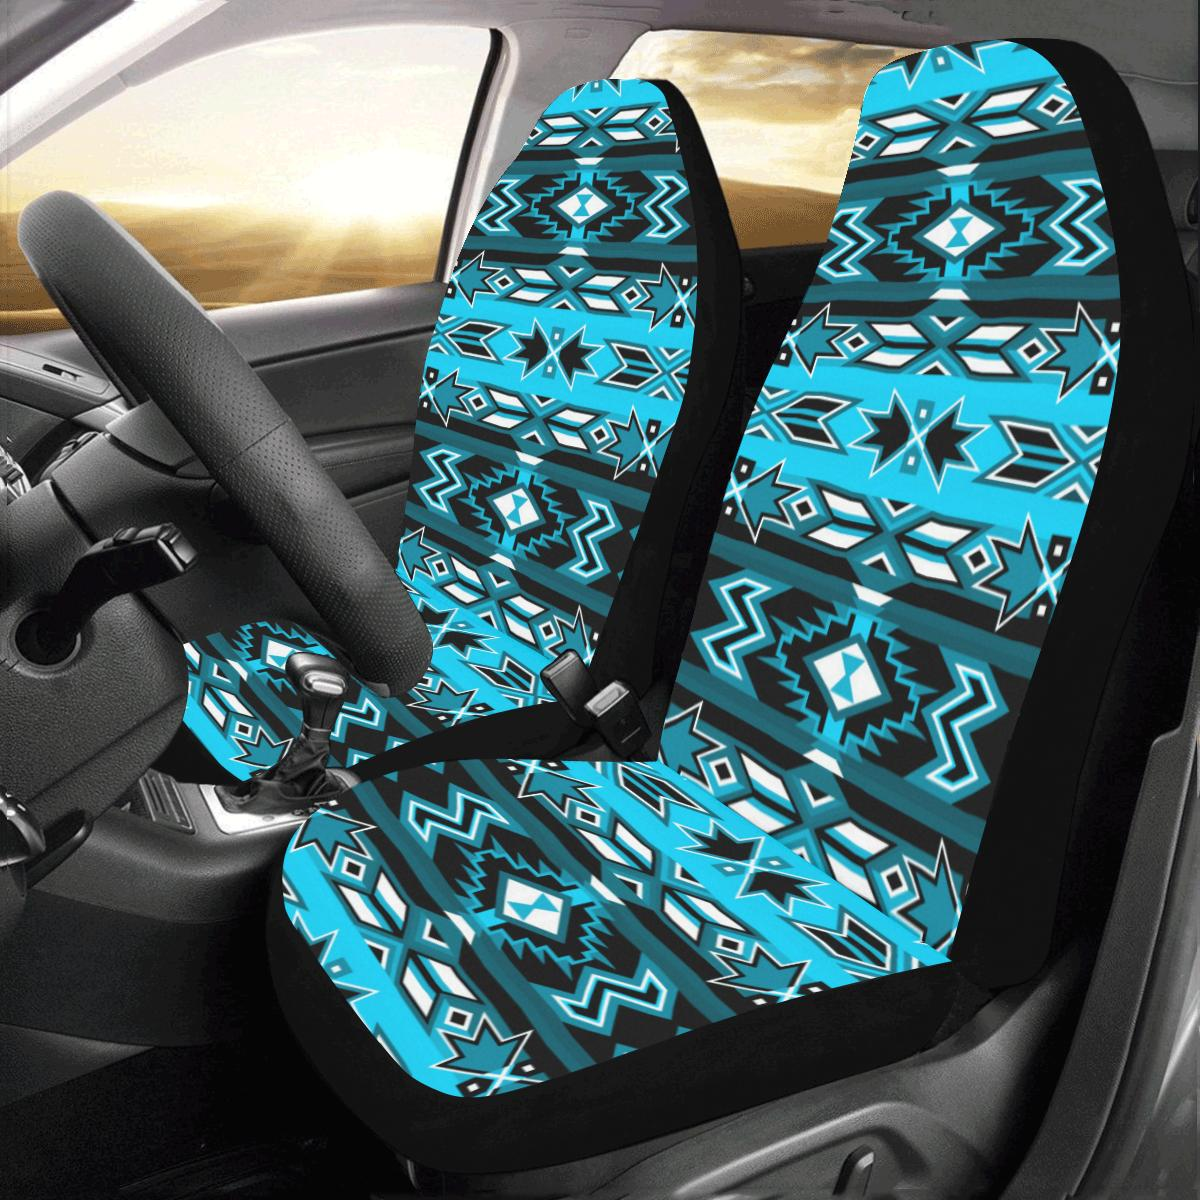 Northern Journey Car Seat Covers (Set of 2) Car Seat Covers e-joyer